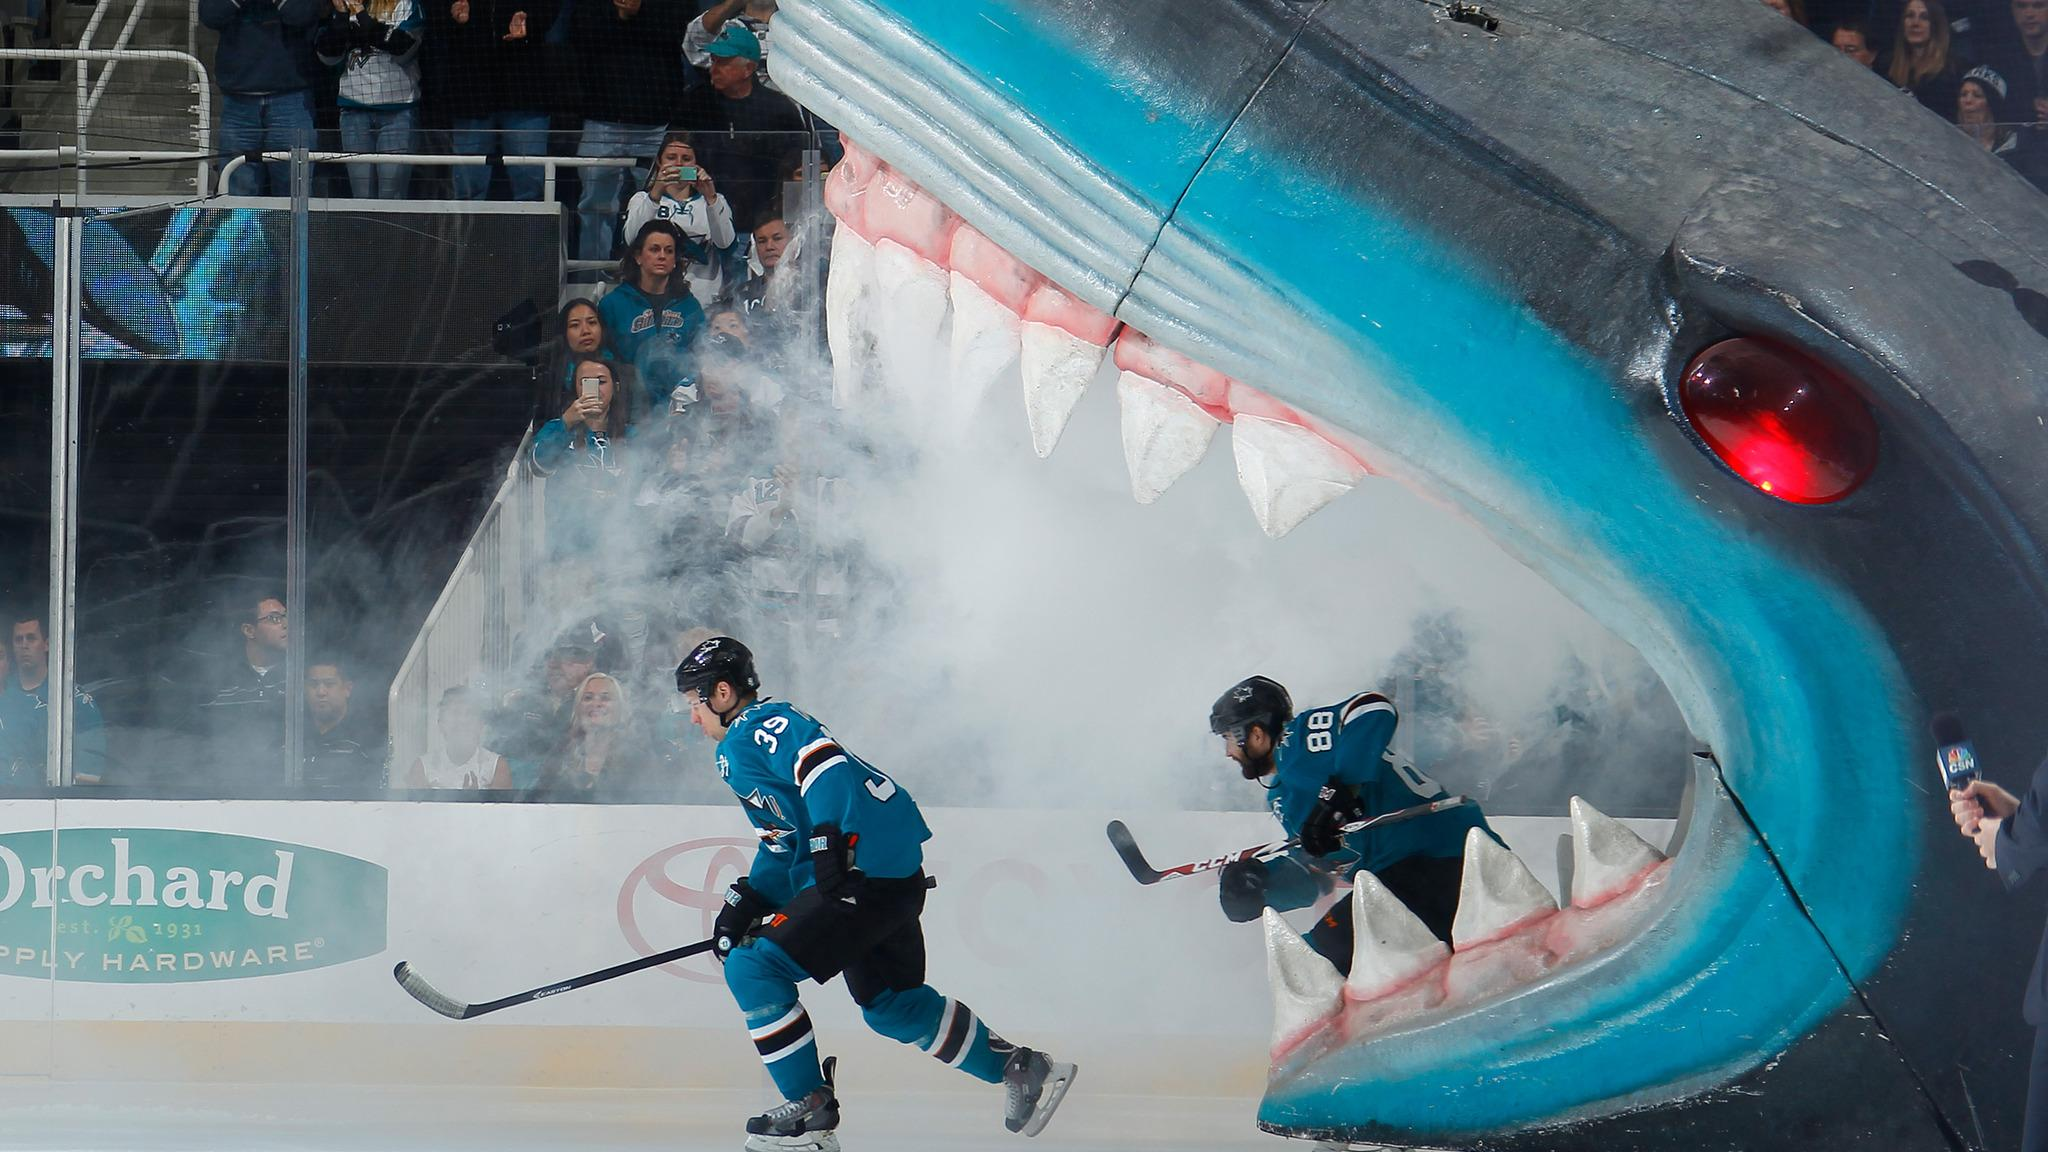 San Jose Sharks vs. Winnipeg Jets at SAP Center at San Jose